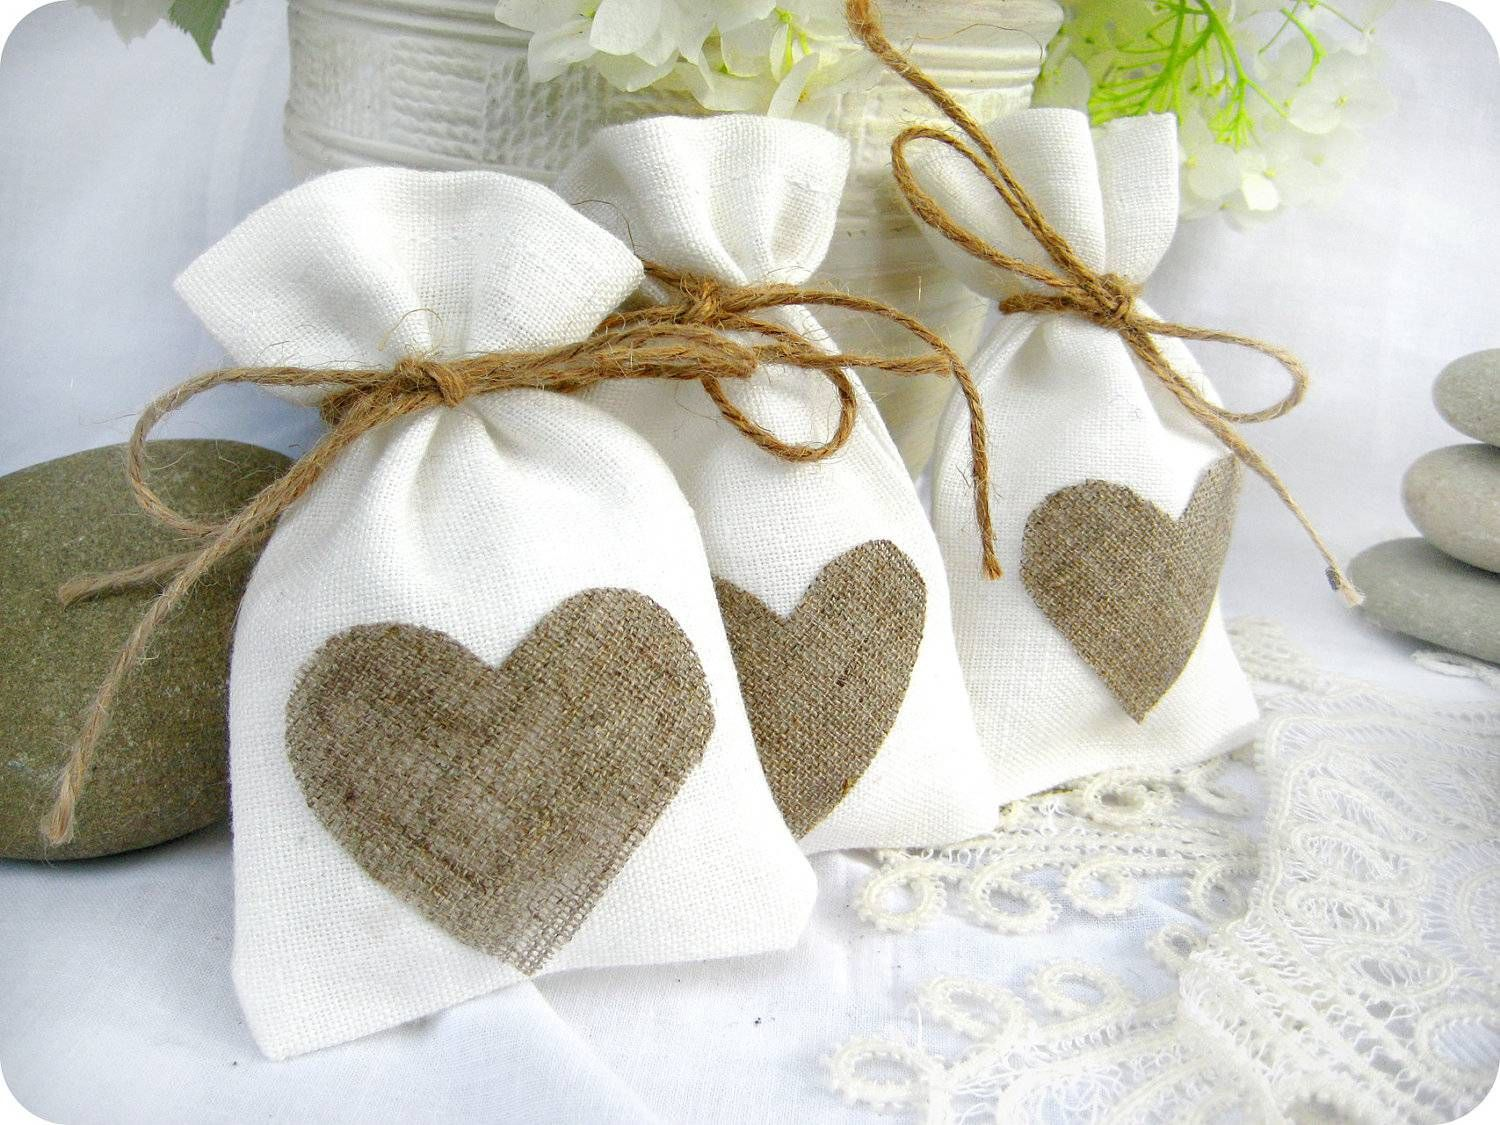 white wedding favor bags | Parties & celebrations | Pinterest ...